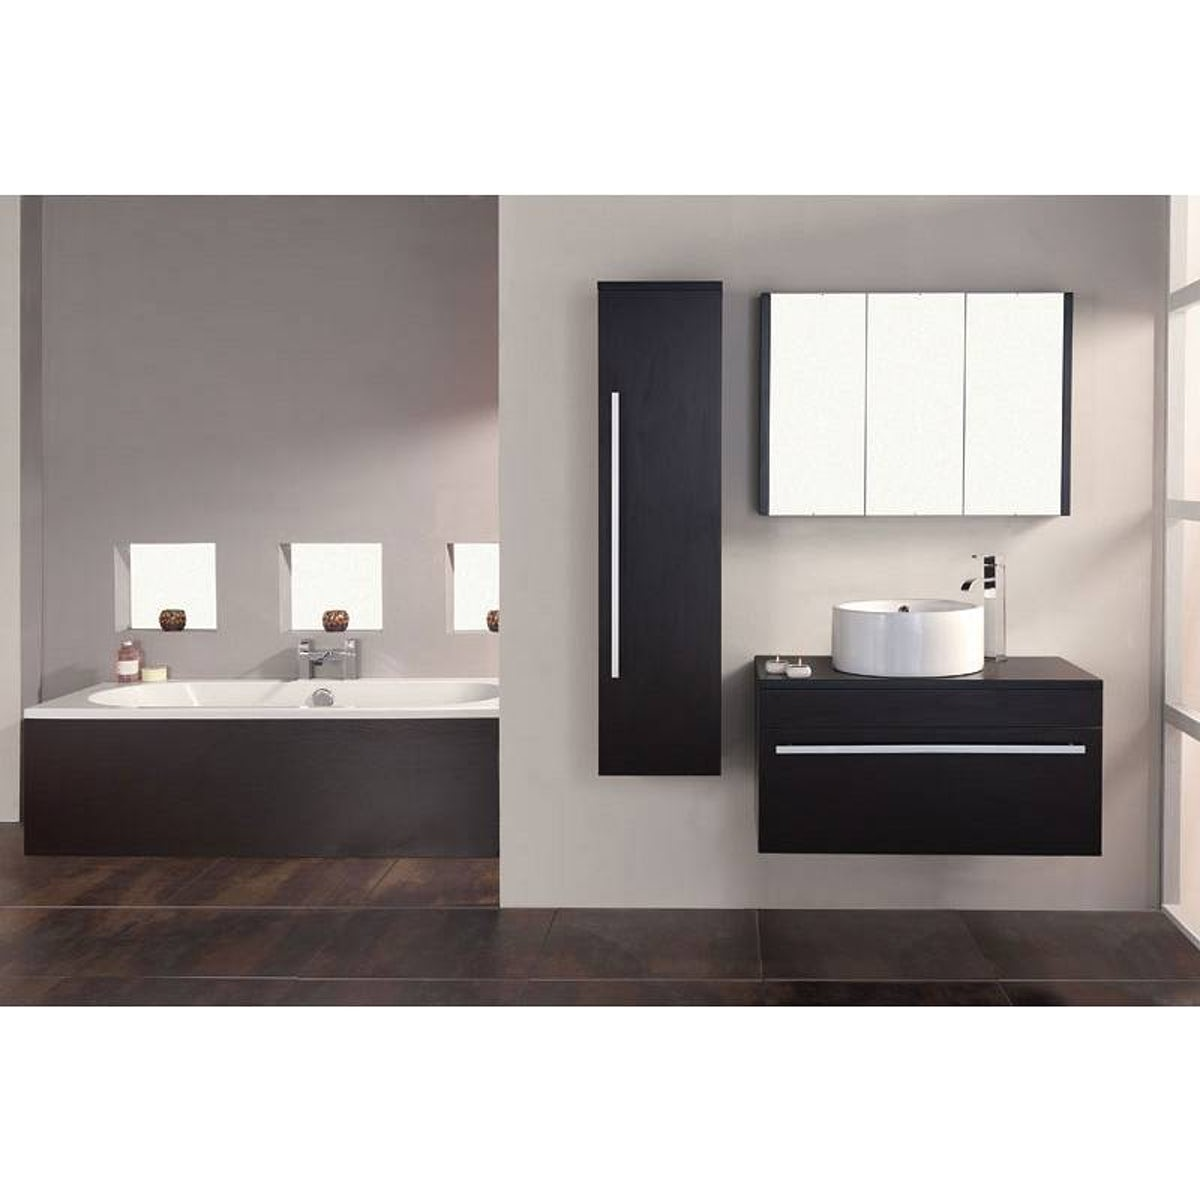 Wenge mirror bathroom cabinet cabinets matttroy for Wenge bathroom cabinet